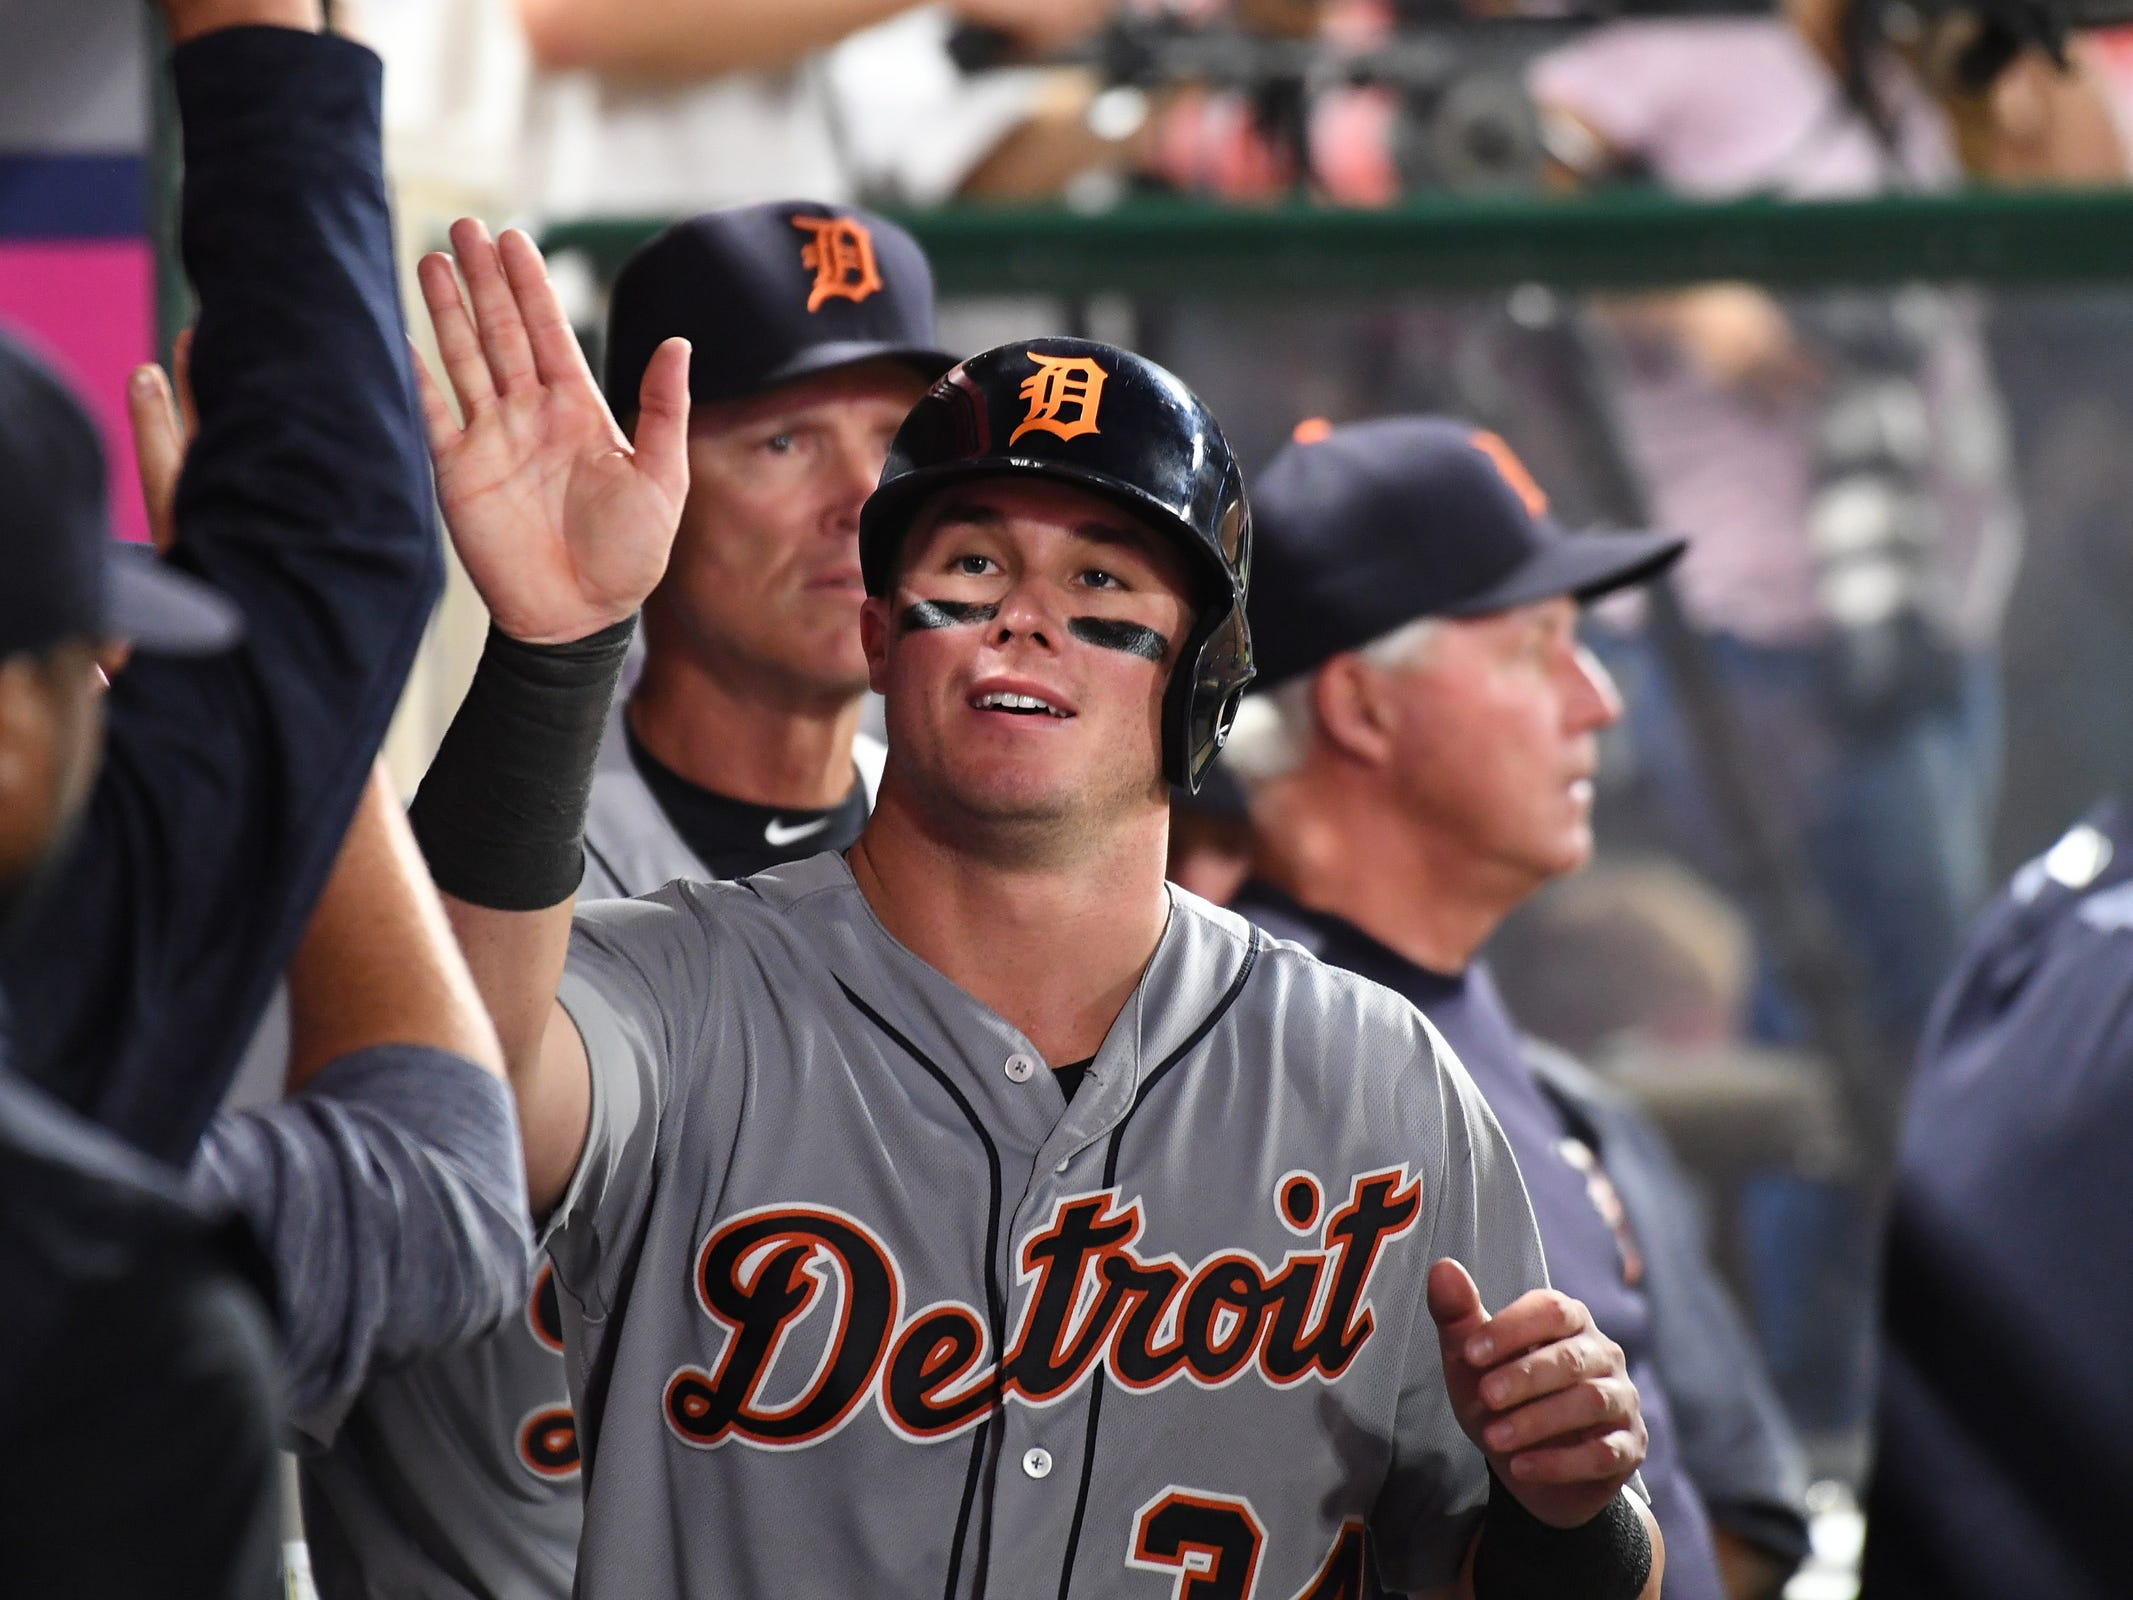 Tigers catcher James McCann celebrates with teammates after scoring a run off a hit by Tigers shortstop Jose Iglesias (not pictured) during the sixth inning on Monday, Aug. 6, 2018, in Anaheim, Calif.